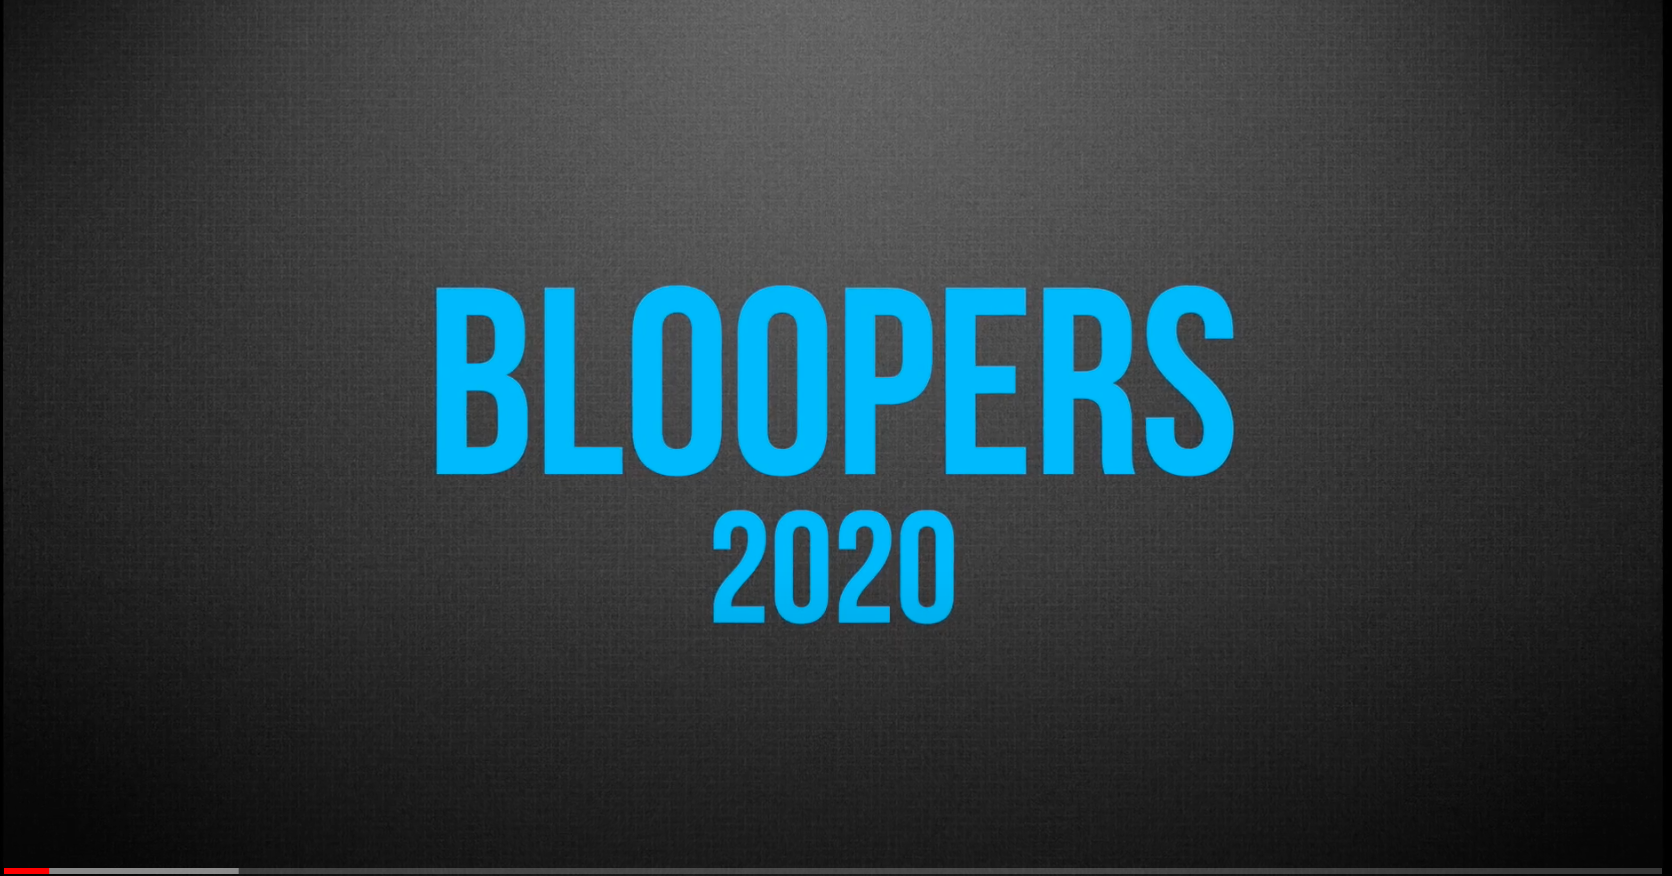 Money Man Bloopers 2020